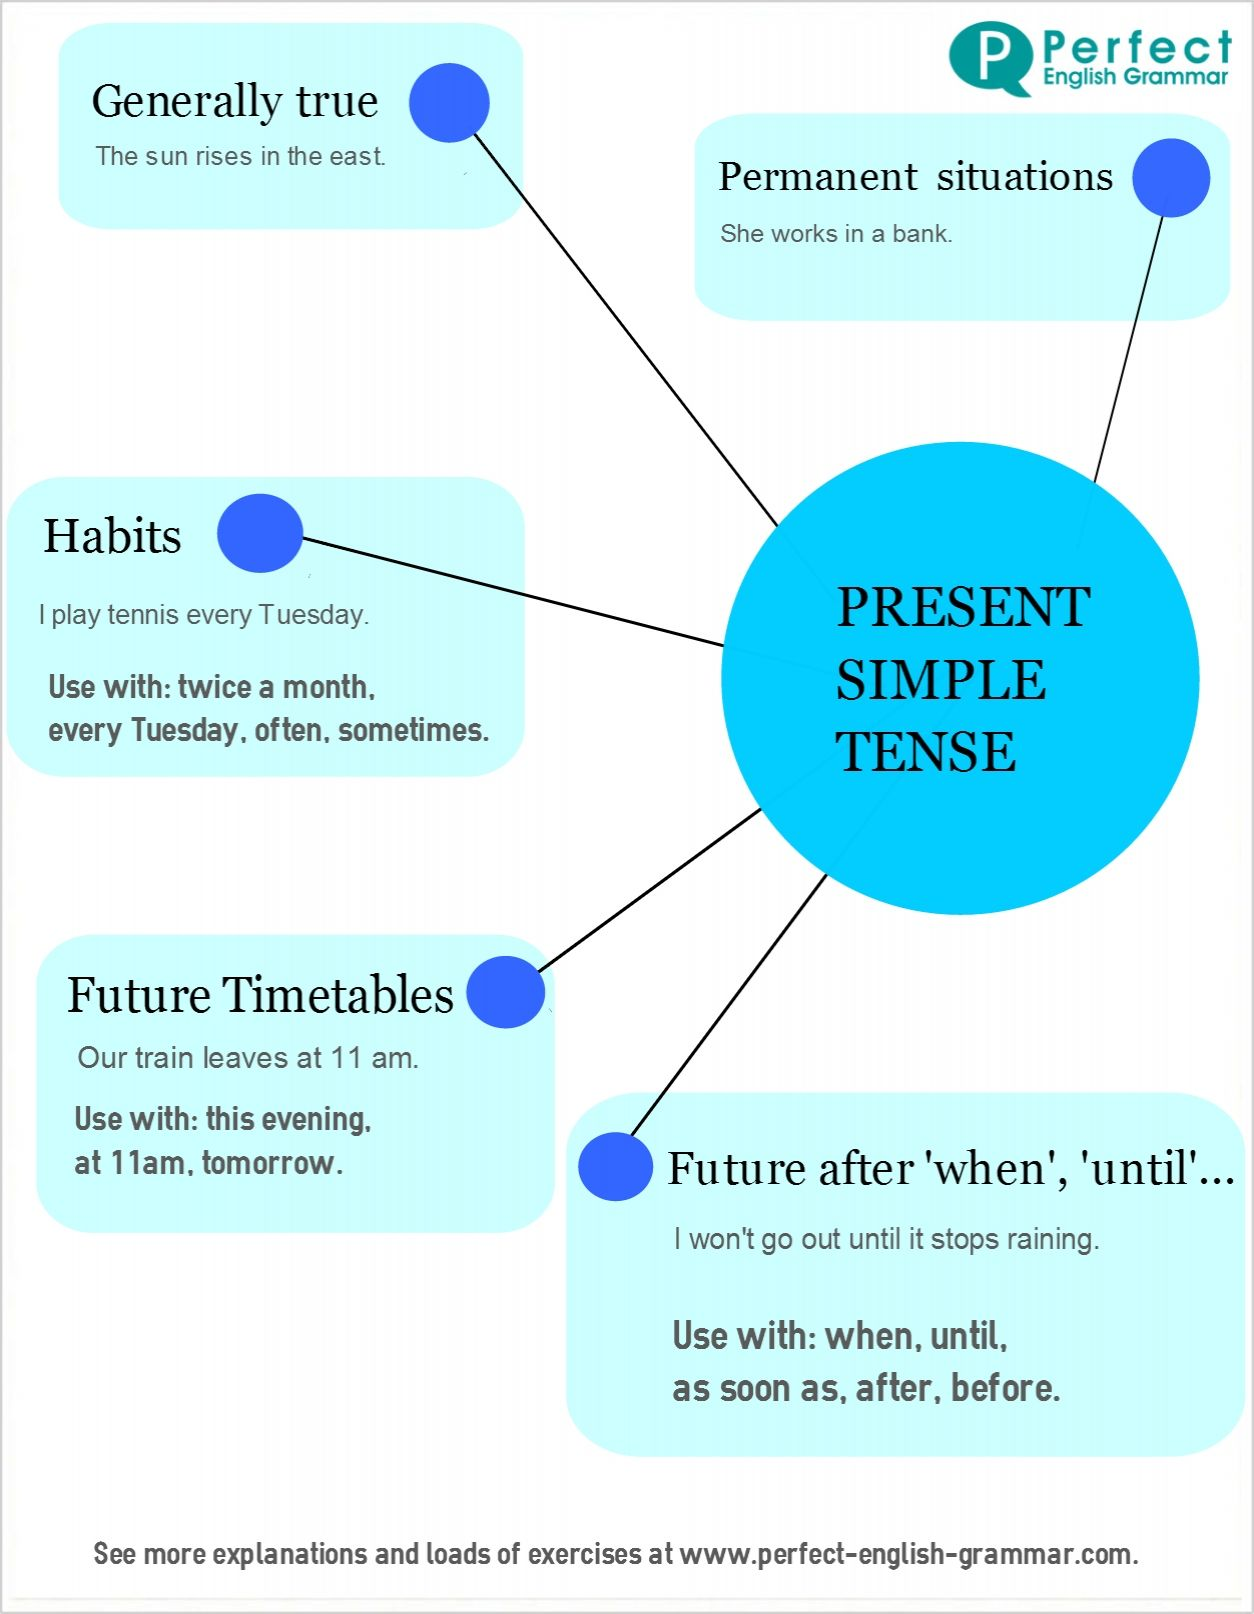 What tense do i use if I'm going to write an essay?